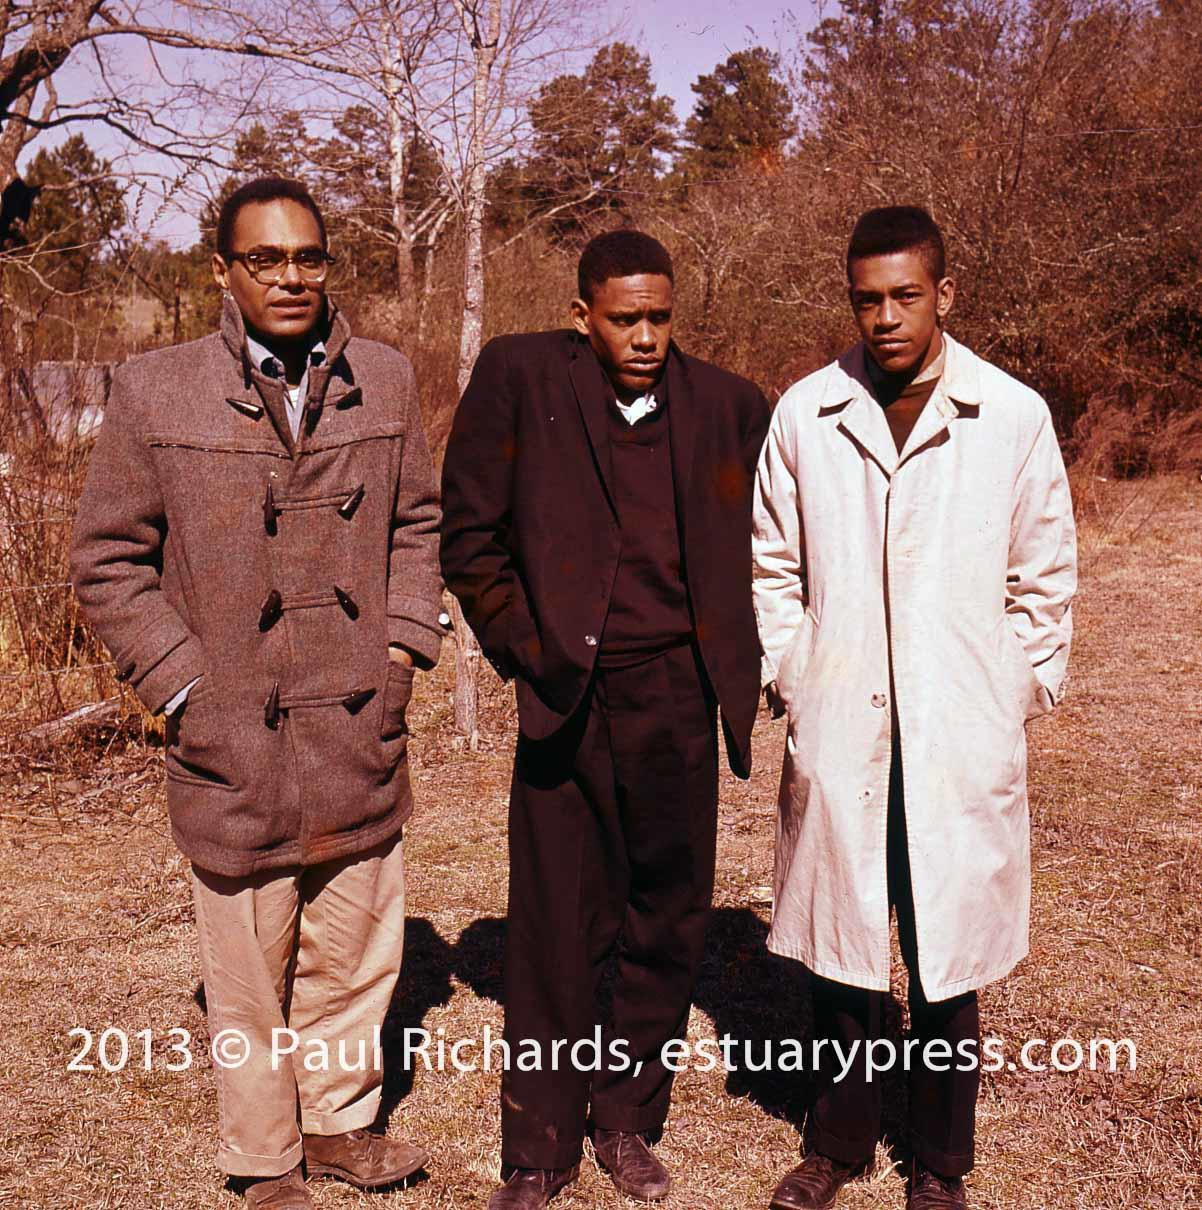 1963, Mississippi Voter Registration Activists.